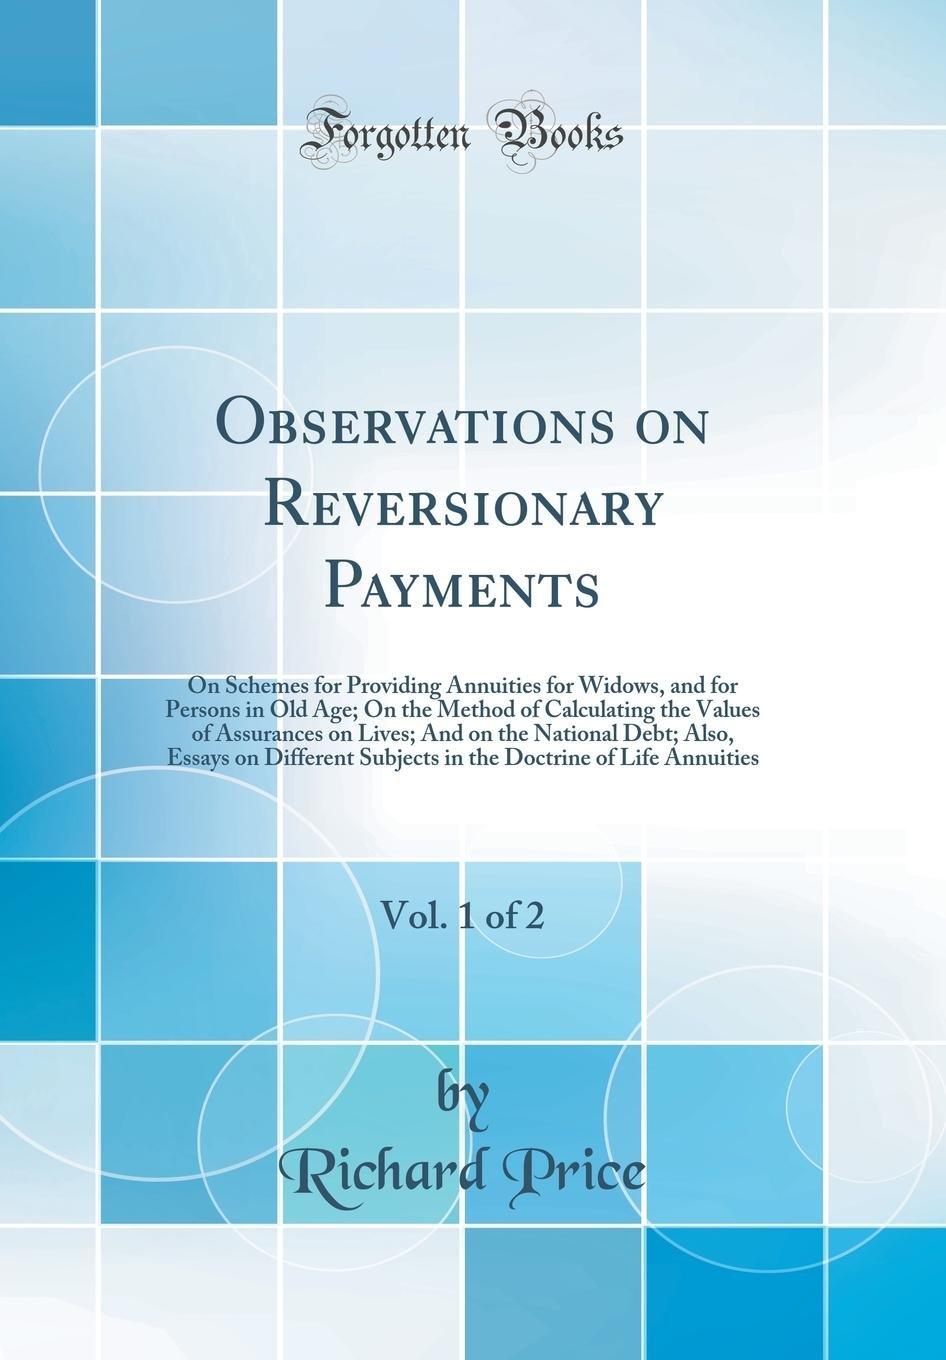 Download Observations on Reversionary Payments, Vol. 1 of 2: On Schemes for Providing Annuities for Widows, and for Persons in Old Age; On the Method of ... Debt; Also, Essays on Different Subjects in ebook